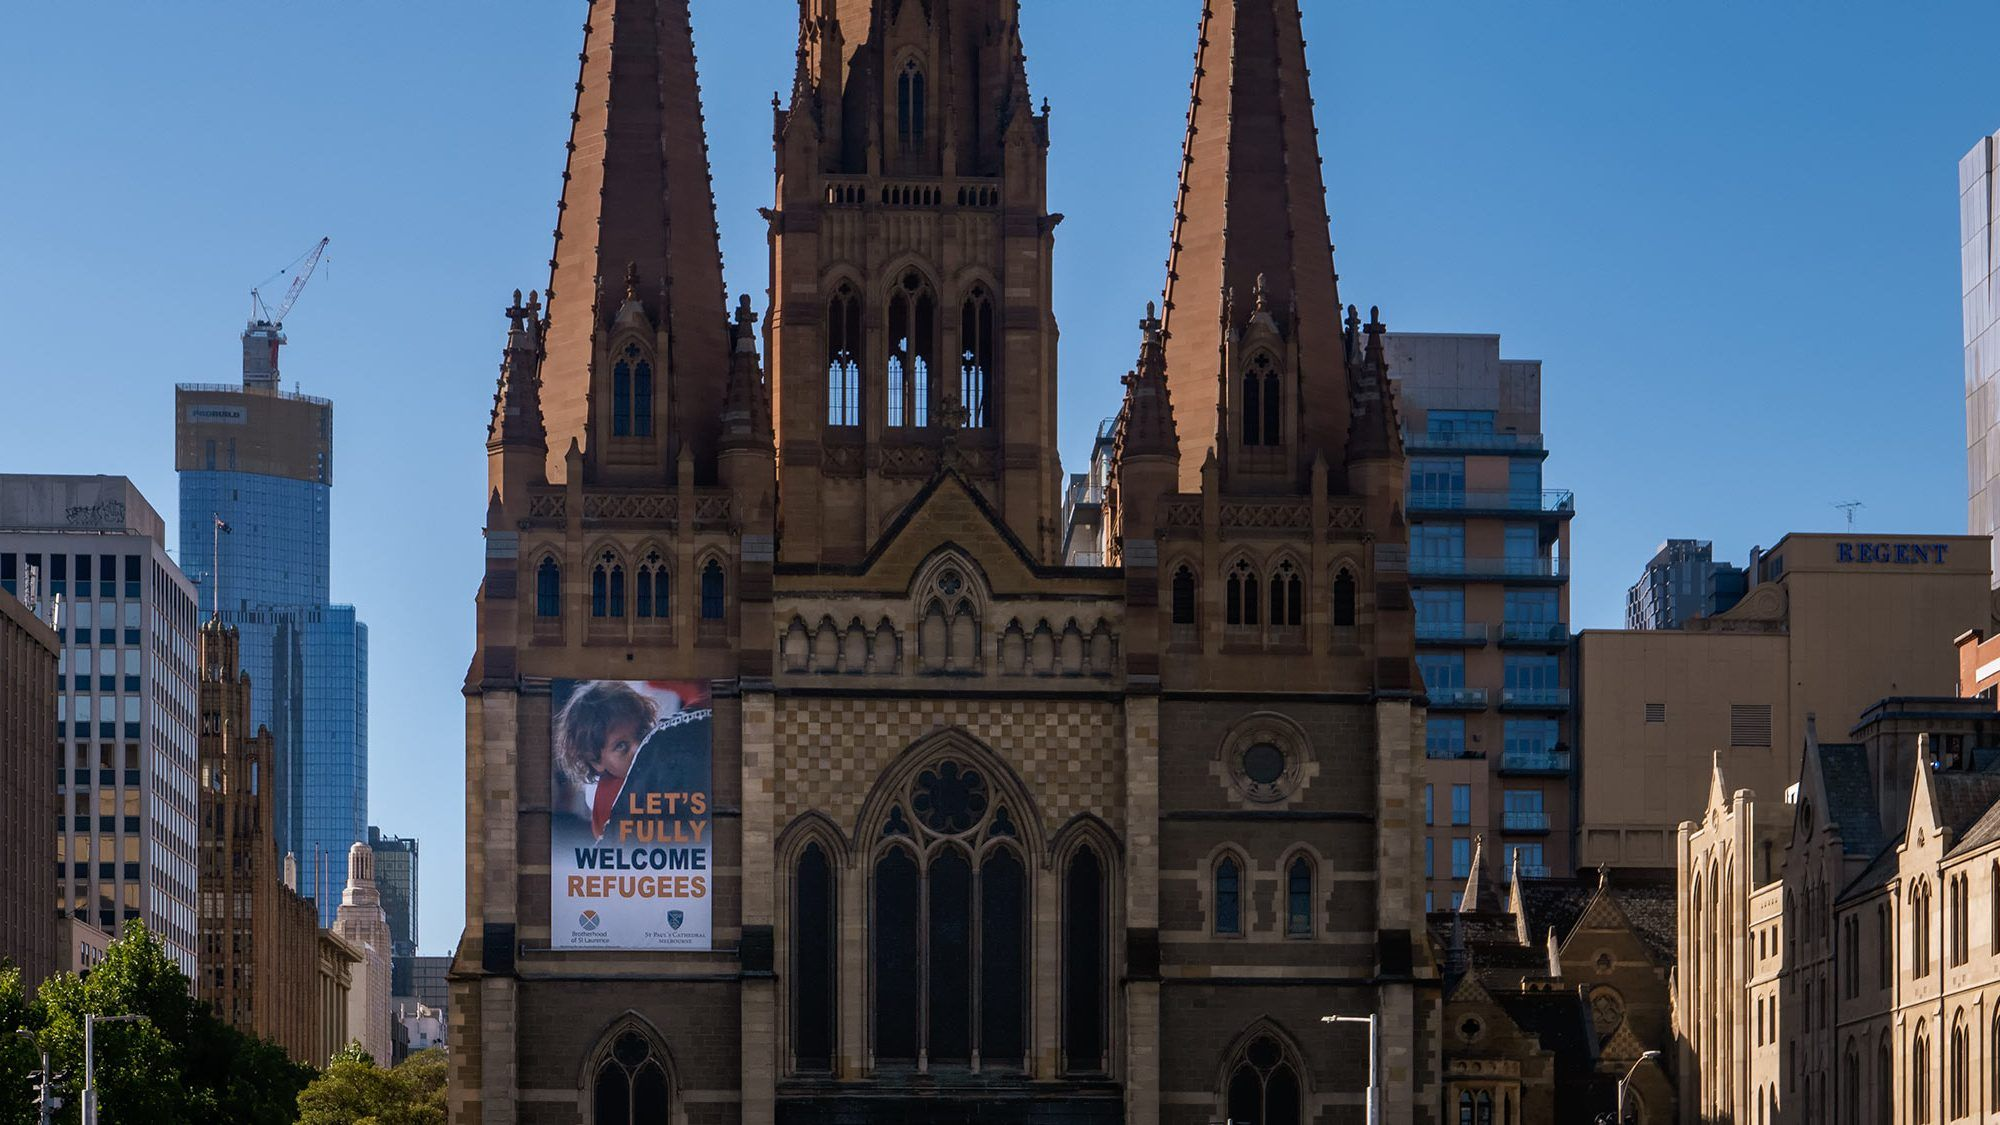 refugees welcome display on church